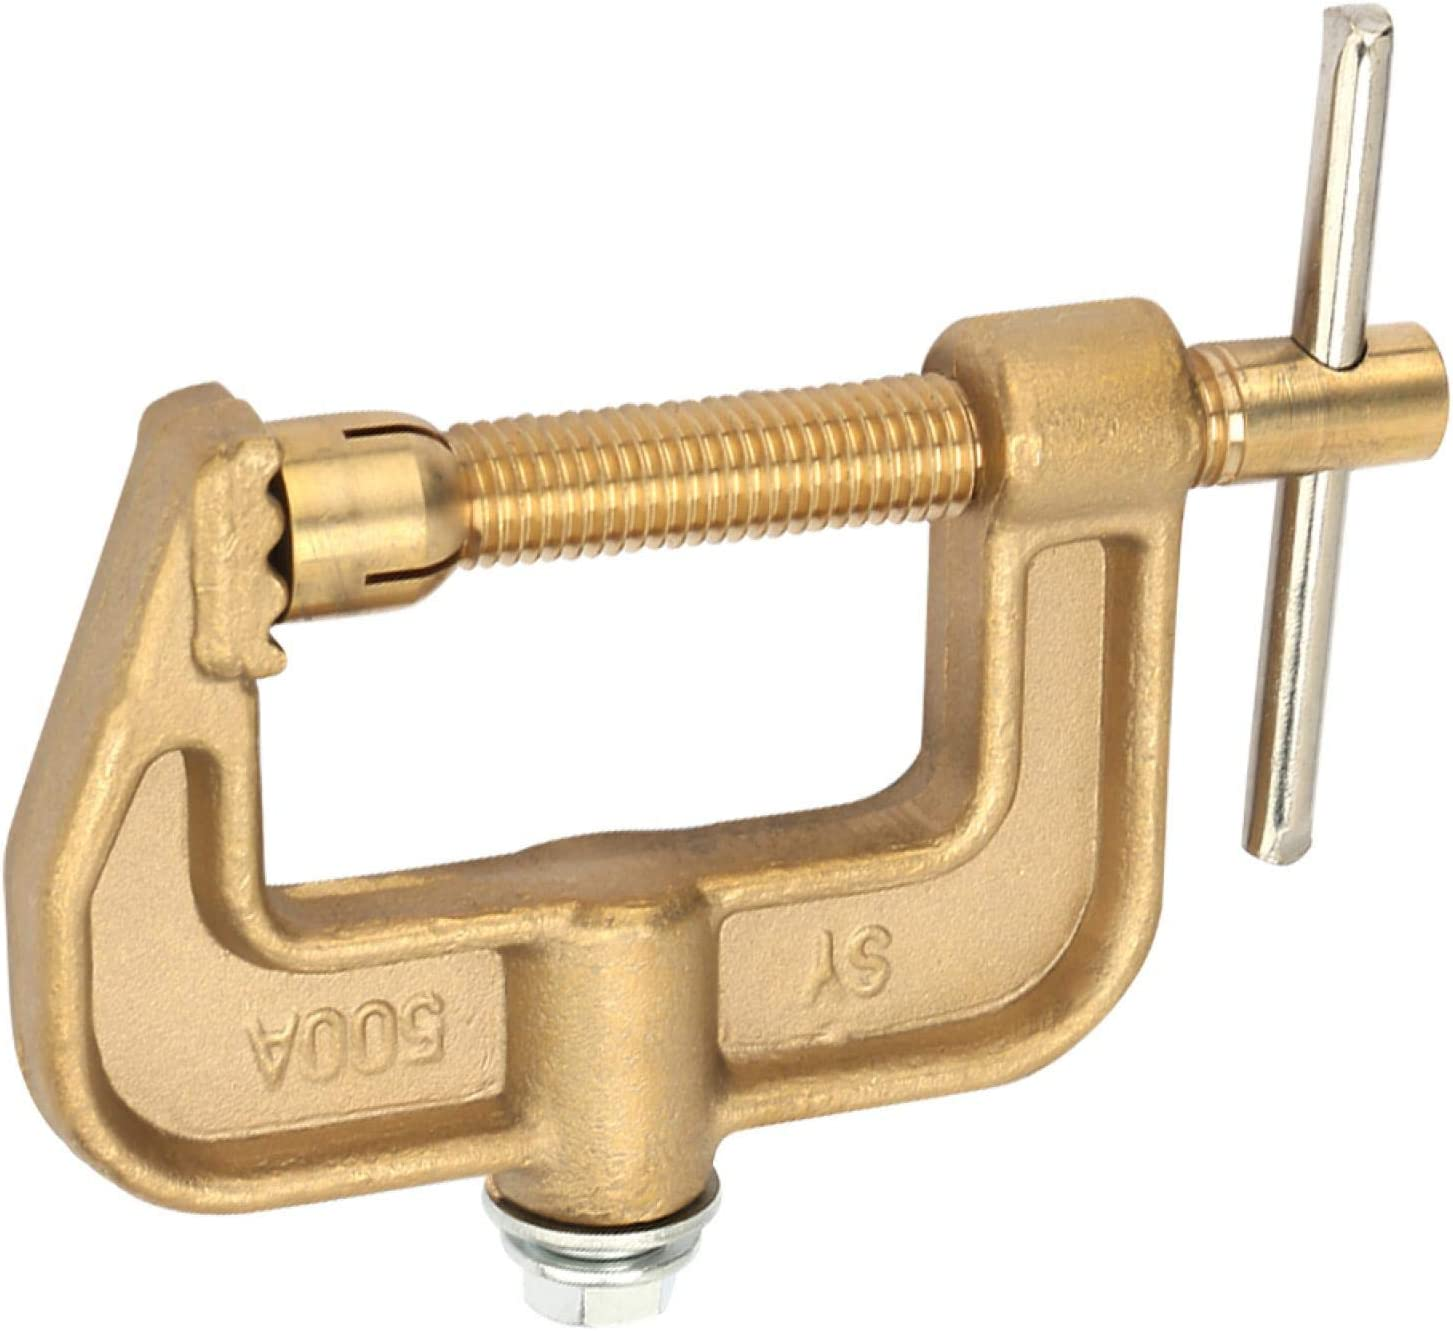 Boaby Ground Welding 500A Brass Material Classical G Shape Ground Welding Earth Clamp for Welding Machine